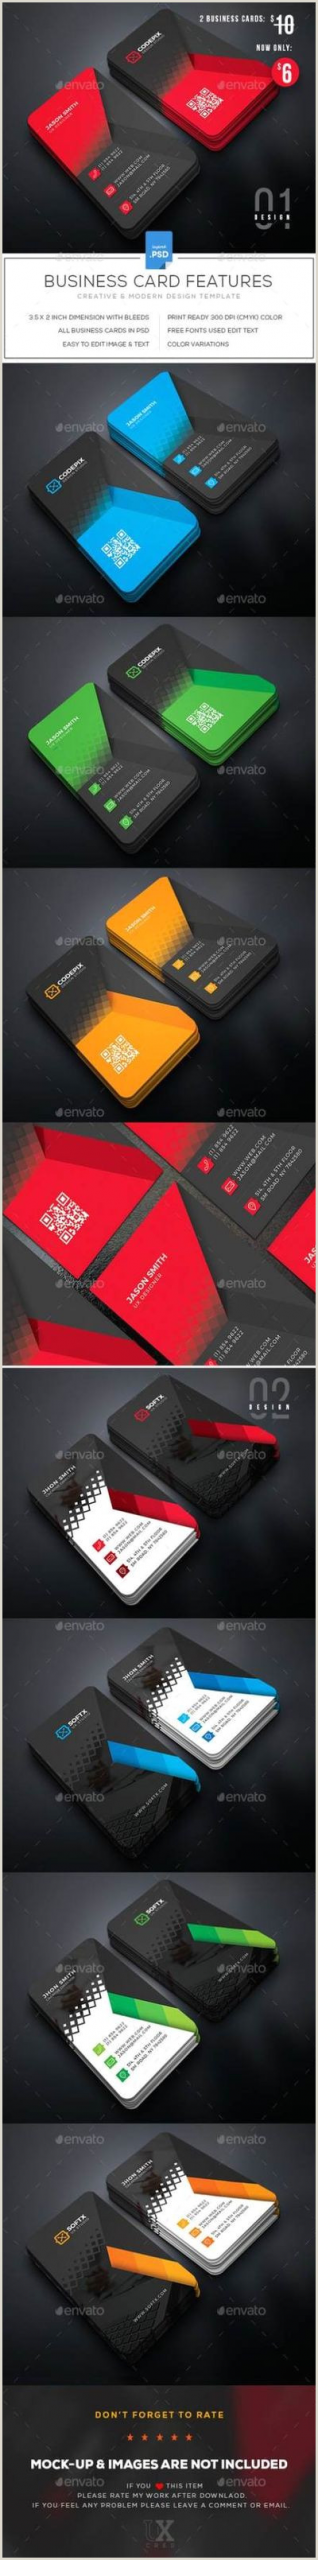 Modern Business Card Design Creative Modern Polygon Business Card